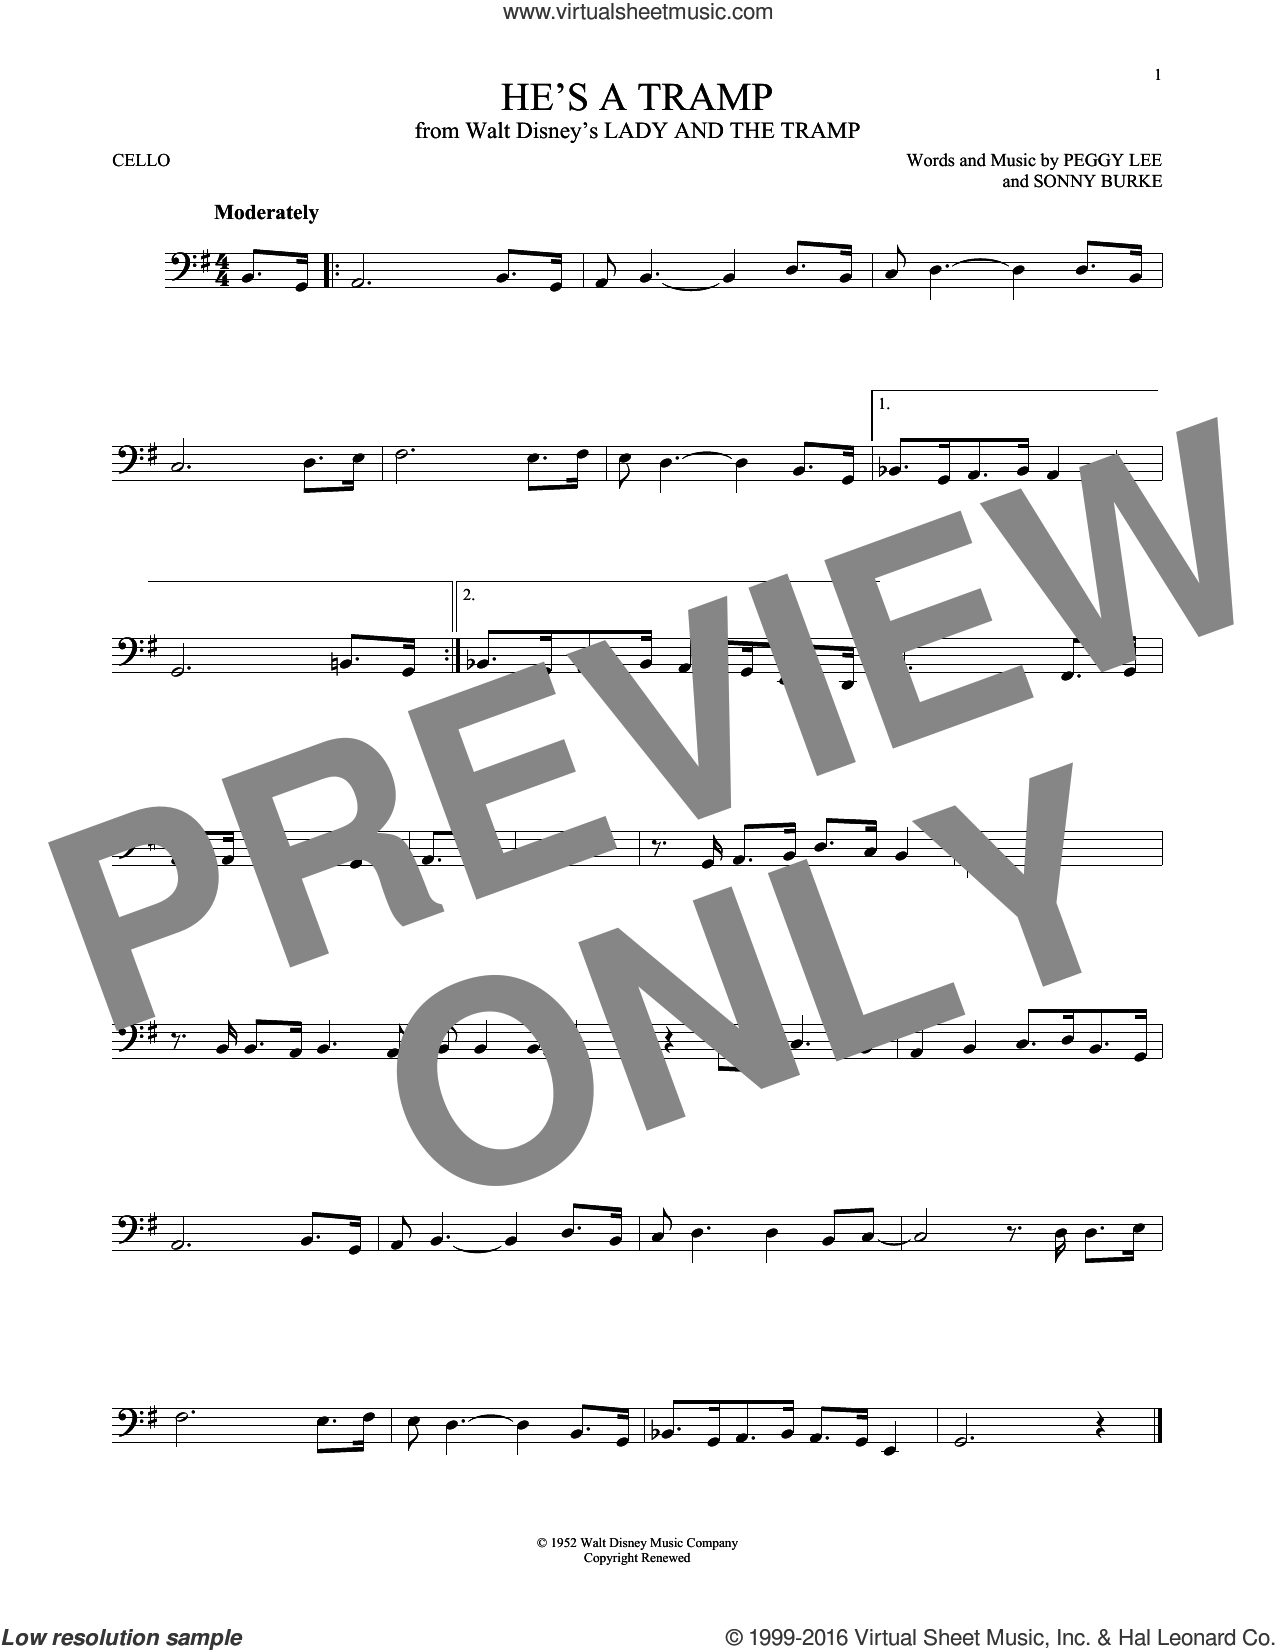 He's A Tramp (from Lady And The Tramp) sheet music for cello solo by Peggy Lee, Peggy Lee & Sonny Burke and Sonny Burke, intermediate skill level